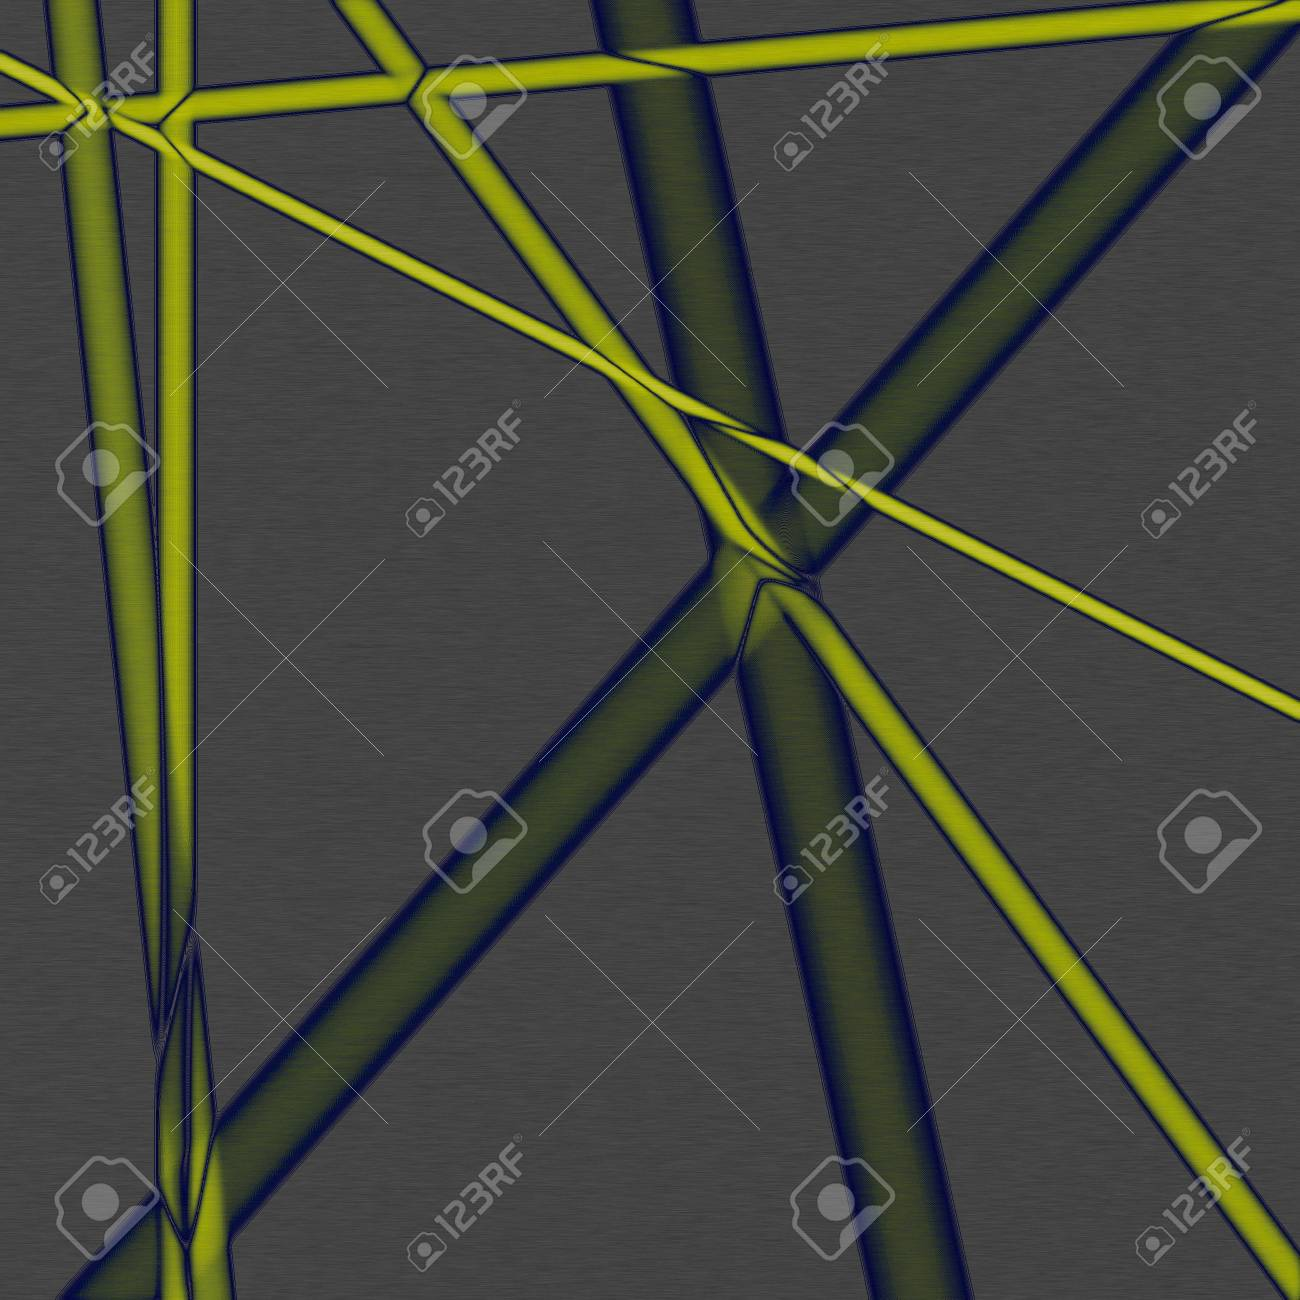 Abstract background or wallpaper Stock Photo - 3429991